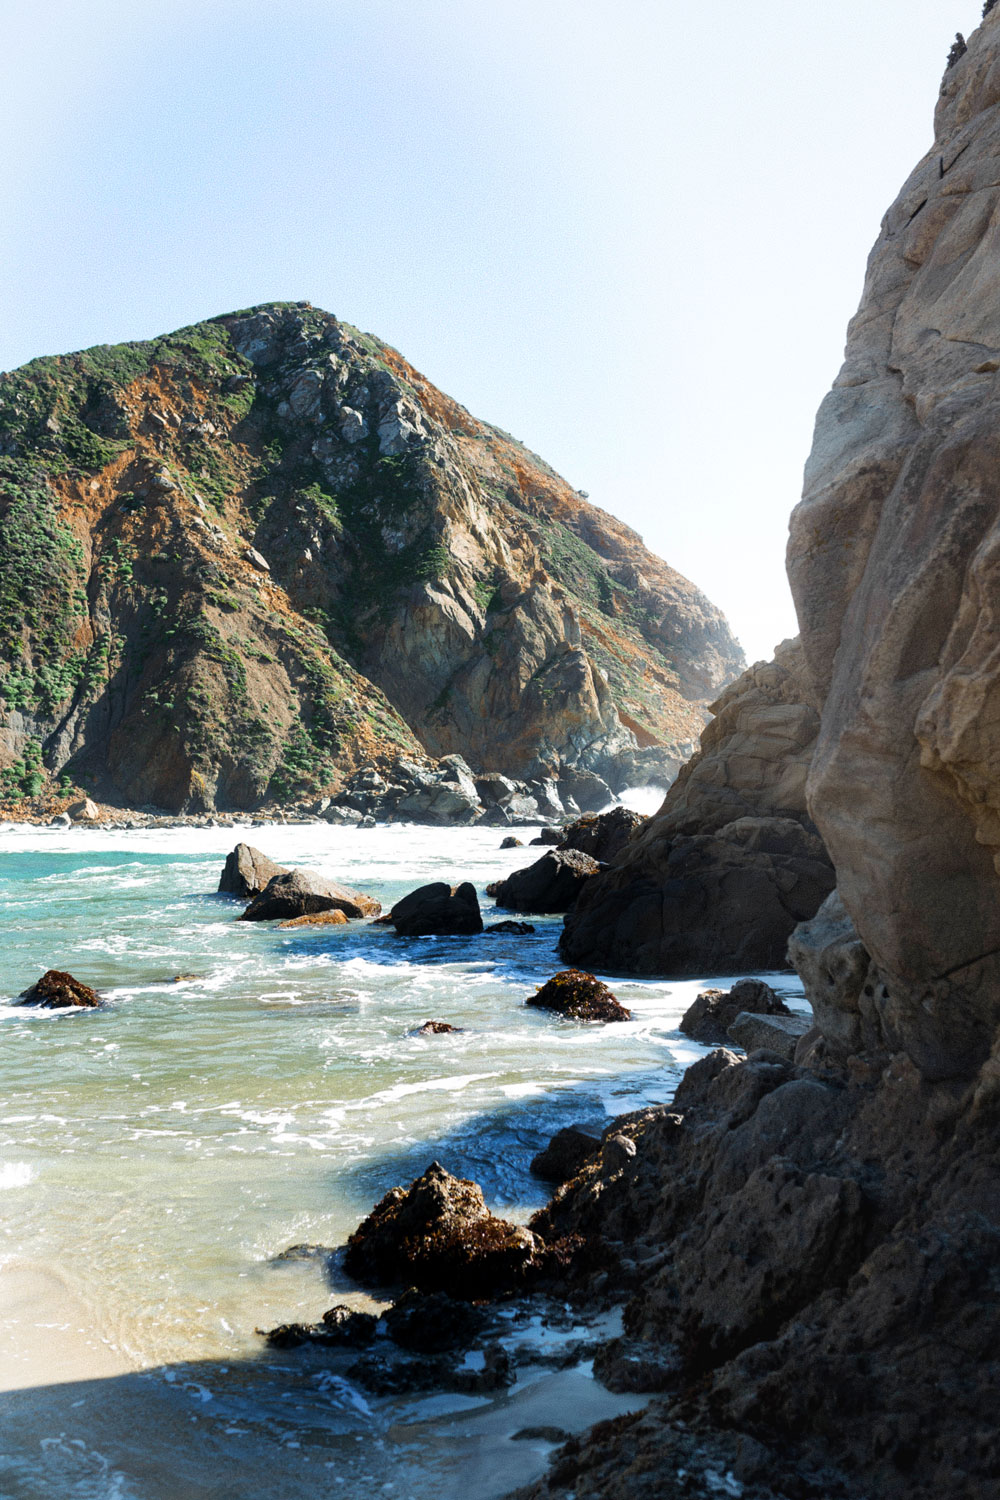 pfeiffer state park big sur by To Vogue or Bust